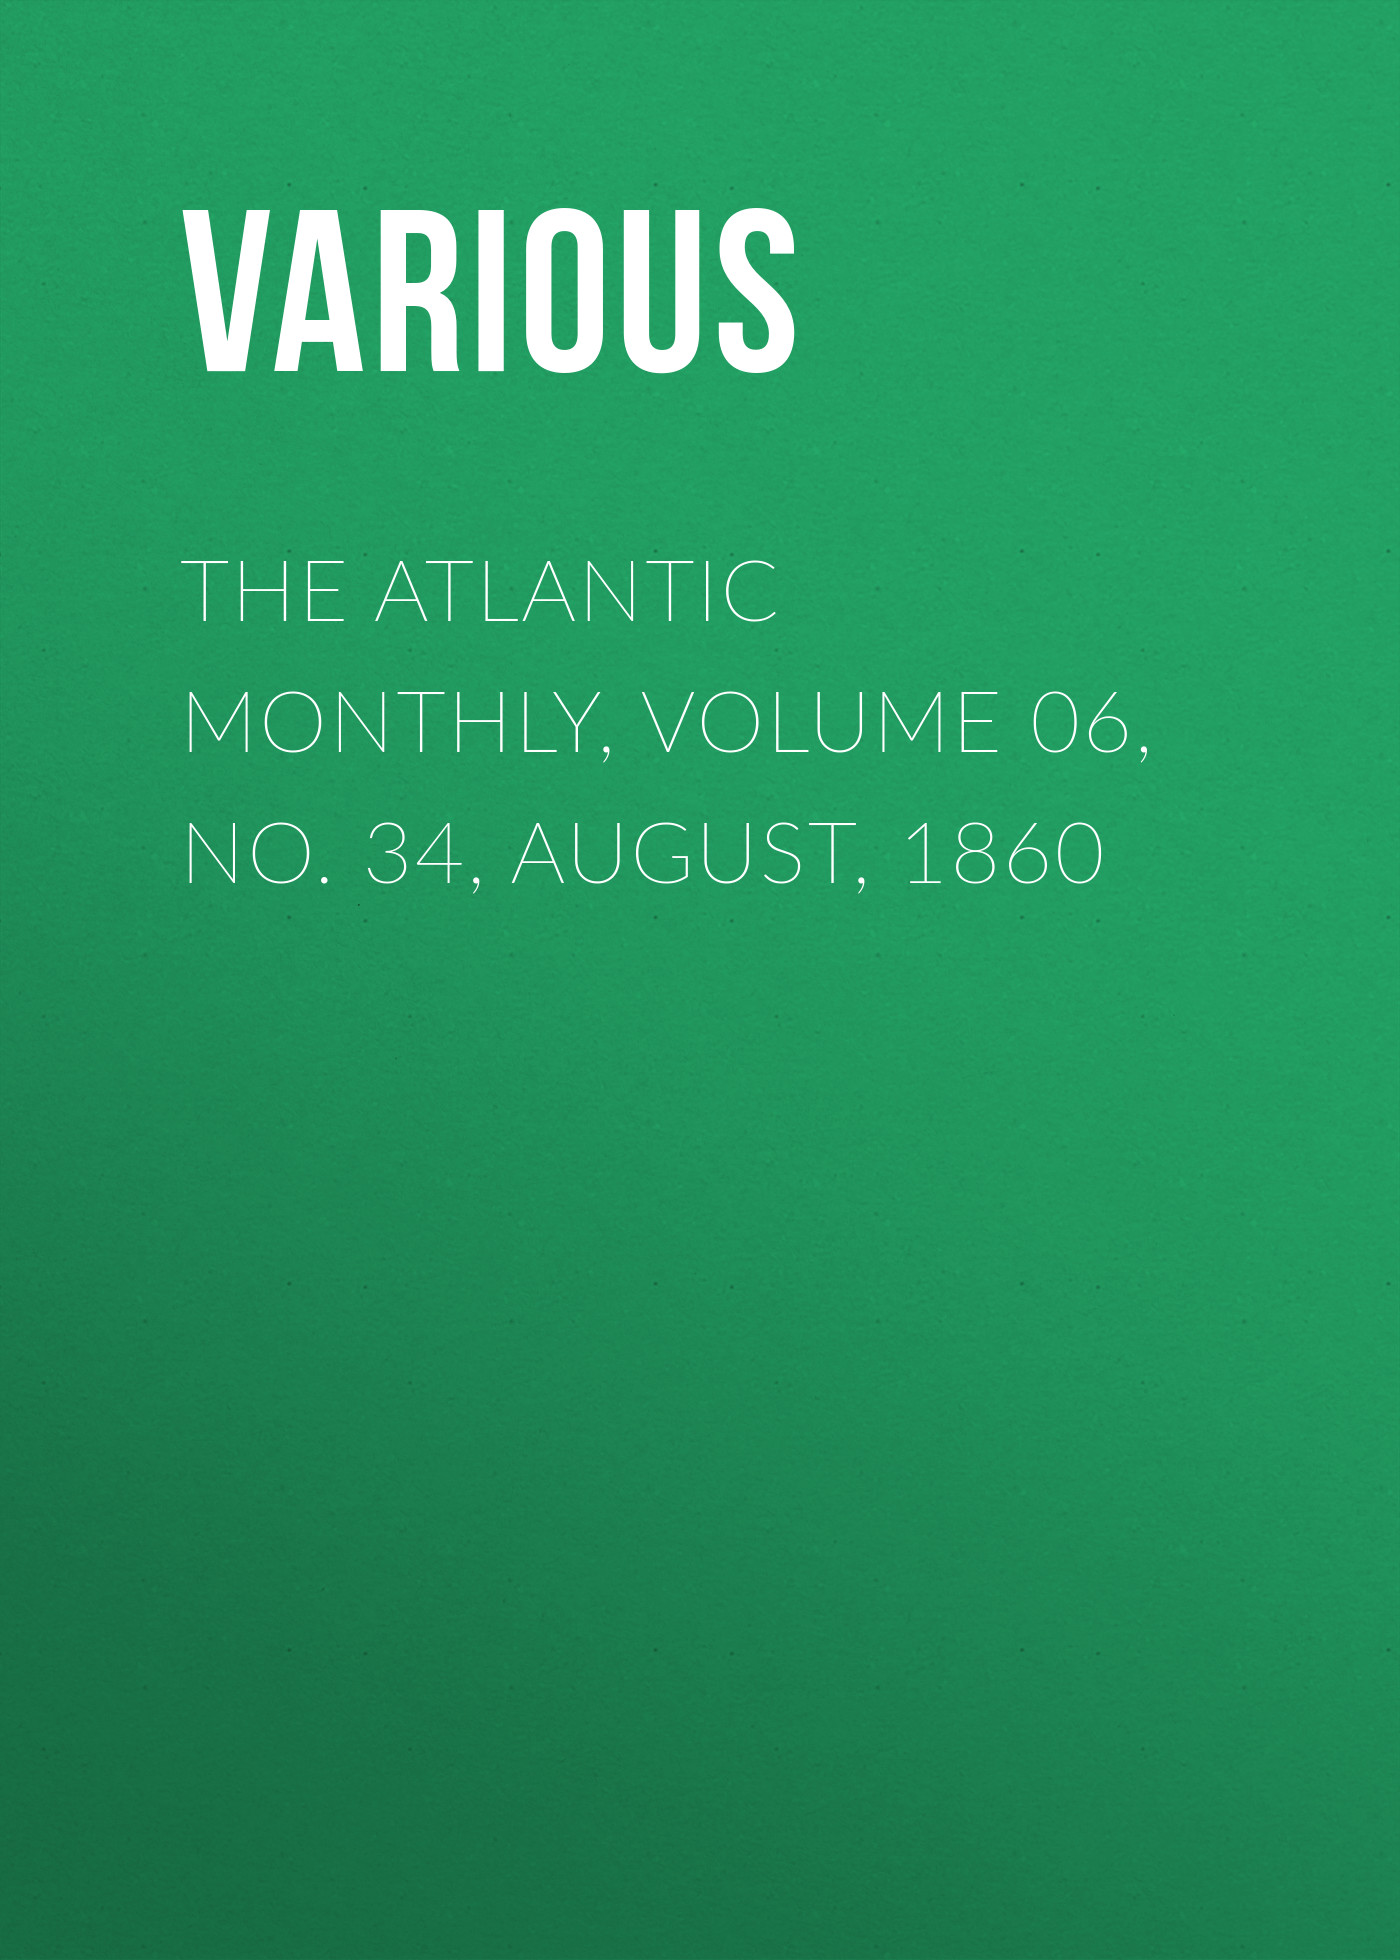 Various The Atlantic Monthly, Volume 06, No. 34, August, 1860 various the atlantic monthly volume 02 no 10 august 1858